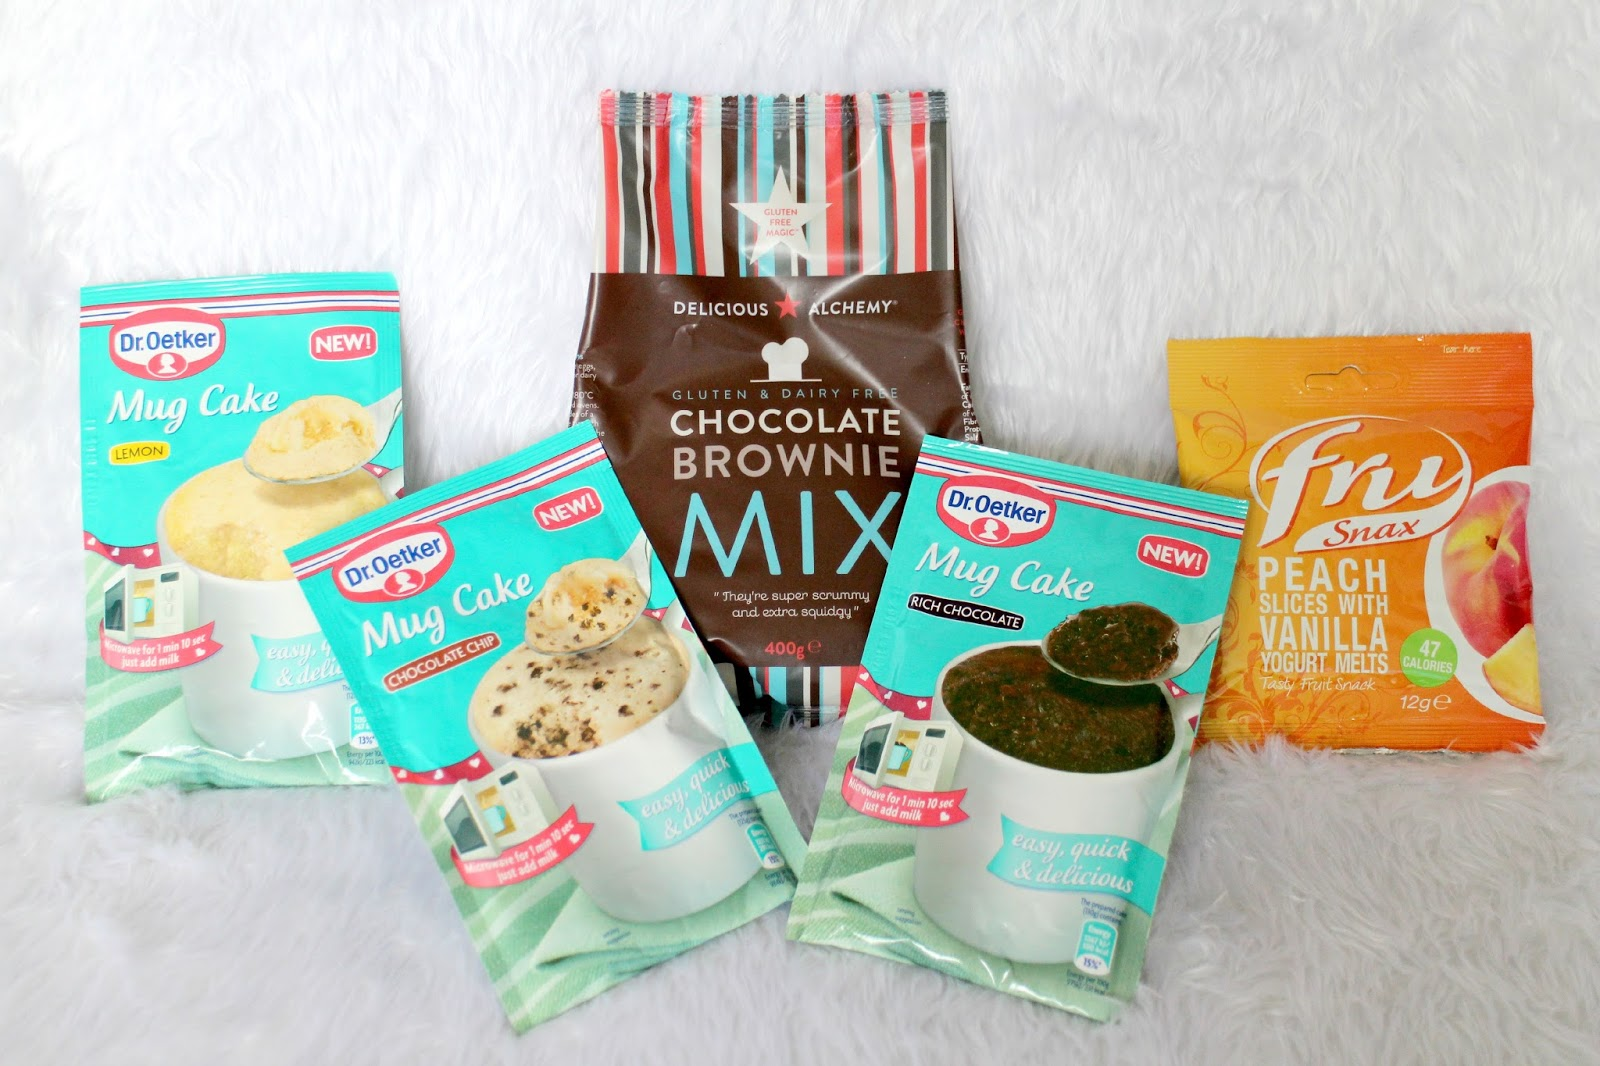 Degustabox August Box 2015